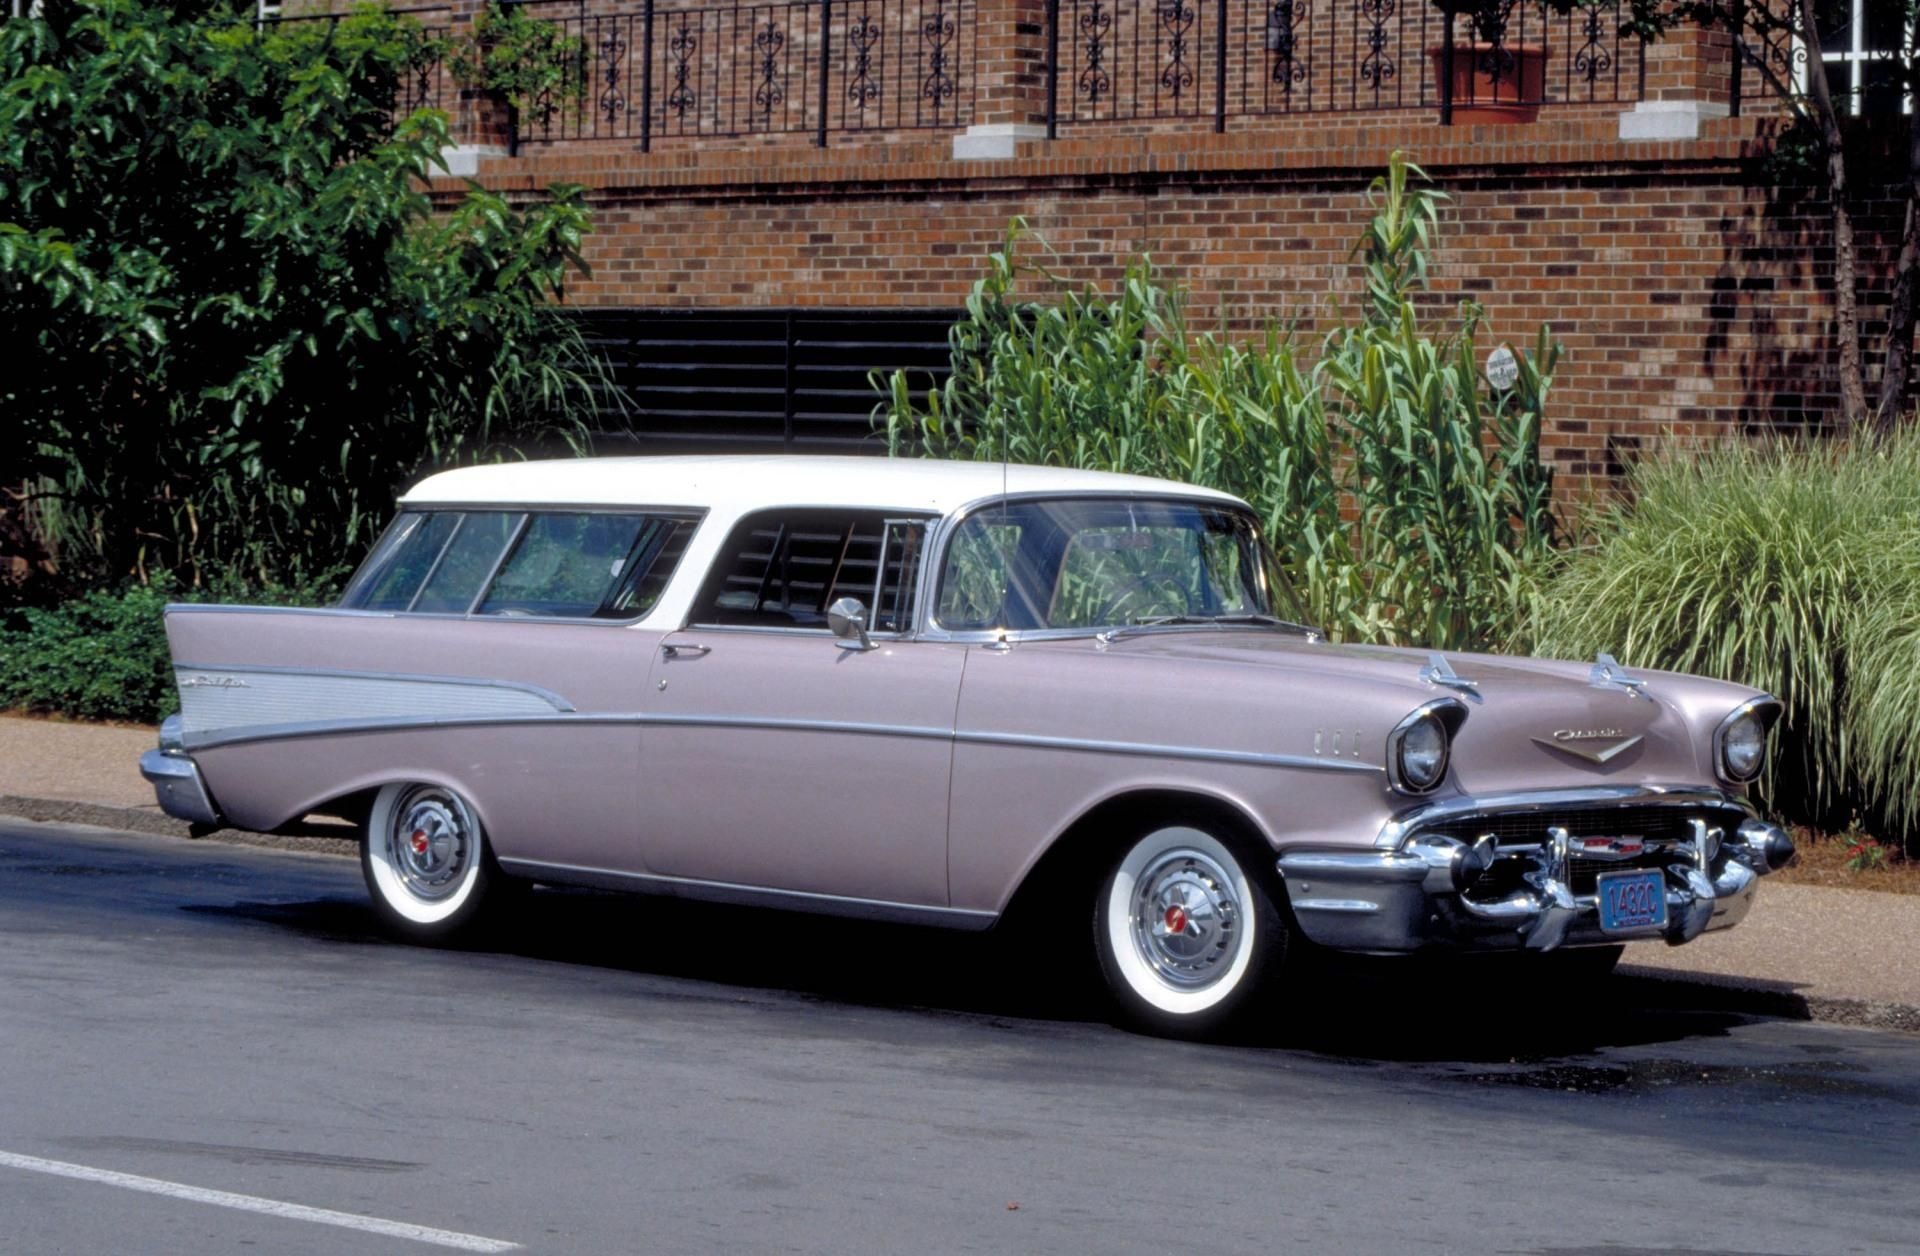 1957 Chevrolet Bel Air Images With Images Chevrolet Bel Air Station Wagon Cars Wagon Cars